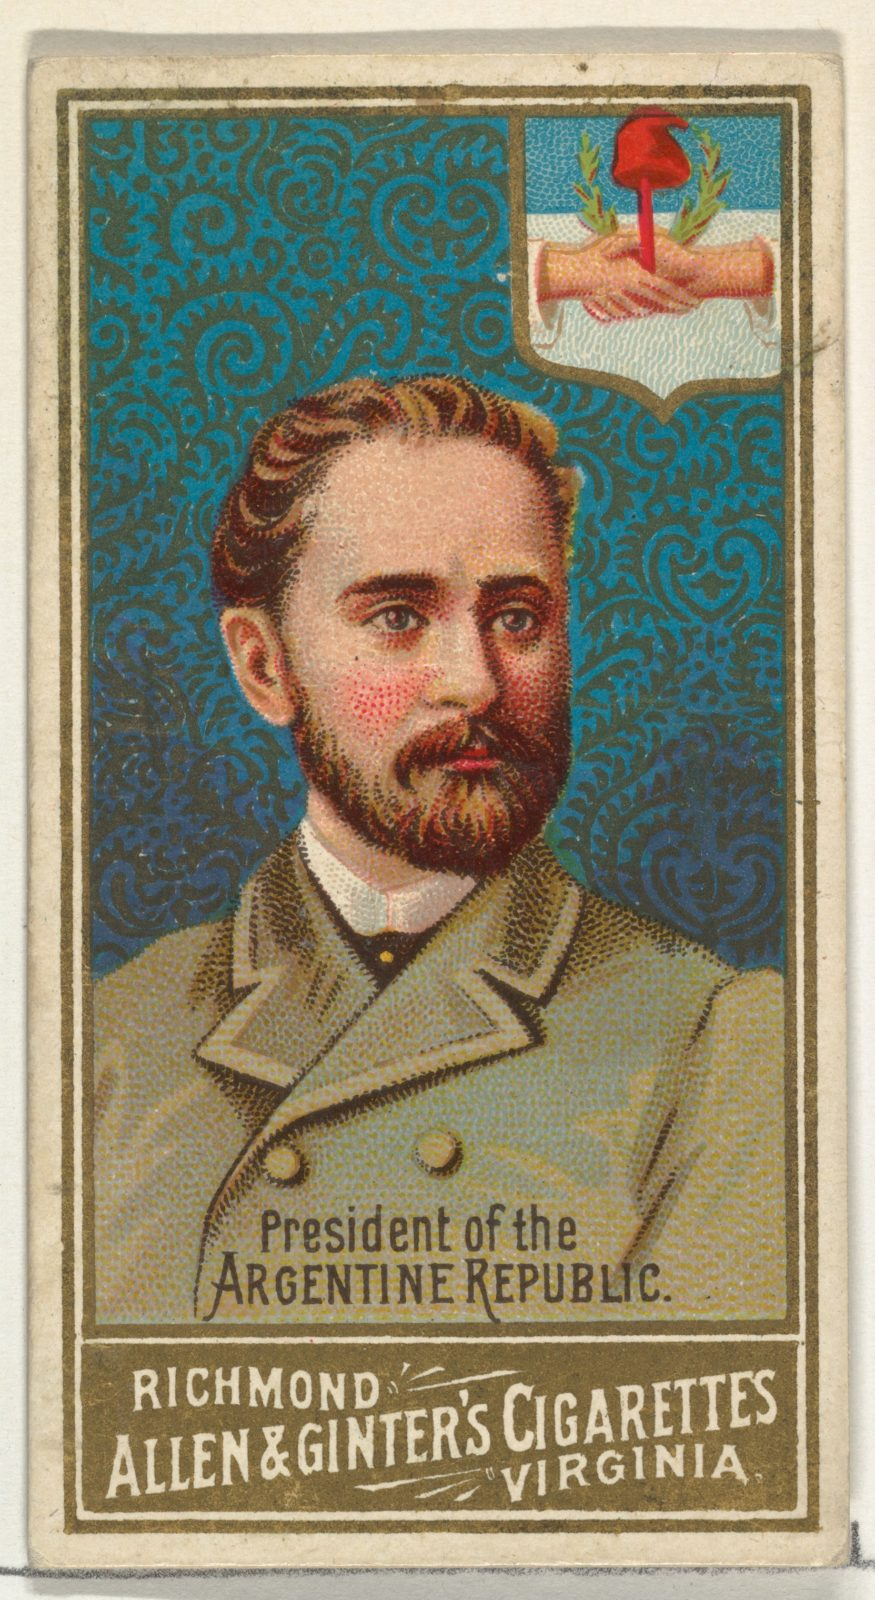 President of the Argentine Republic, from World's Sovereigns series (N34) for Allen & Ginter Cigarettes